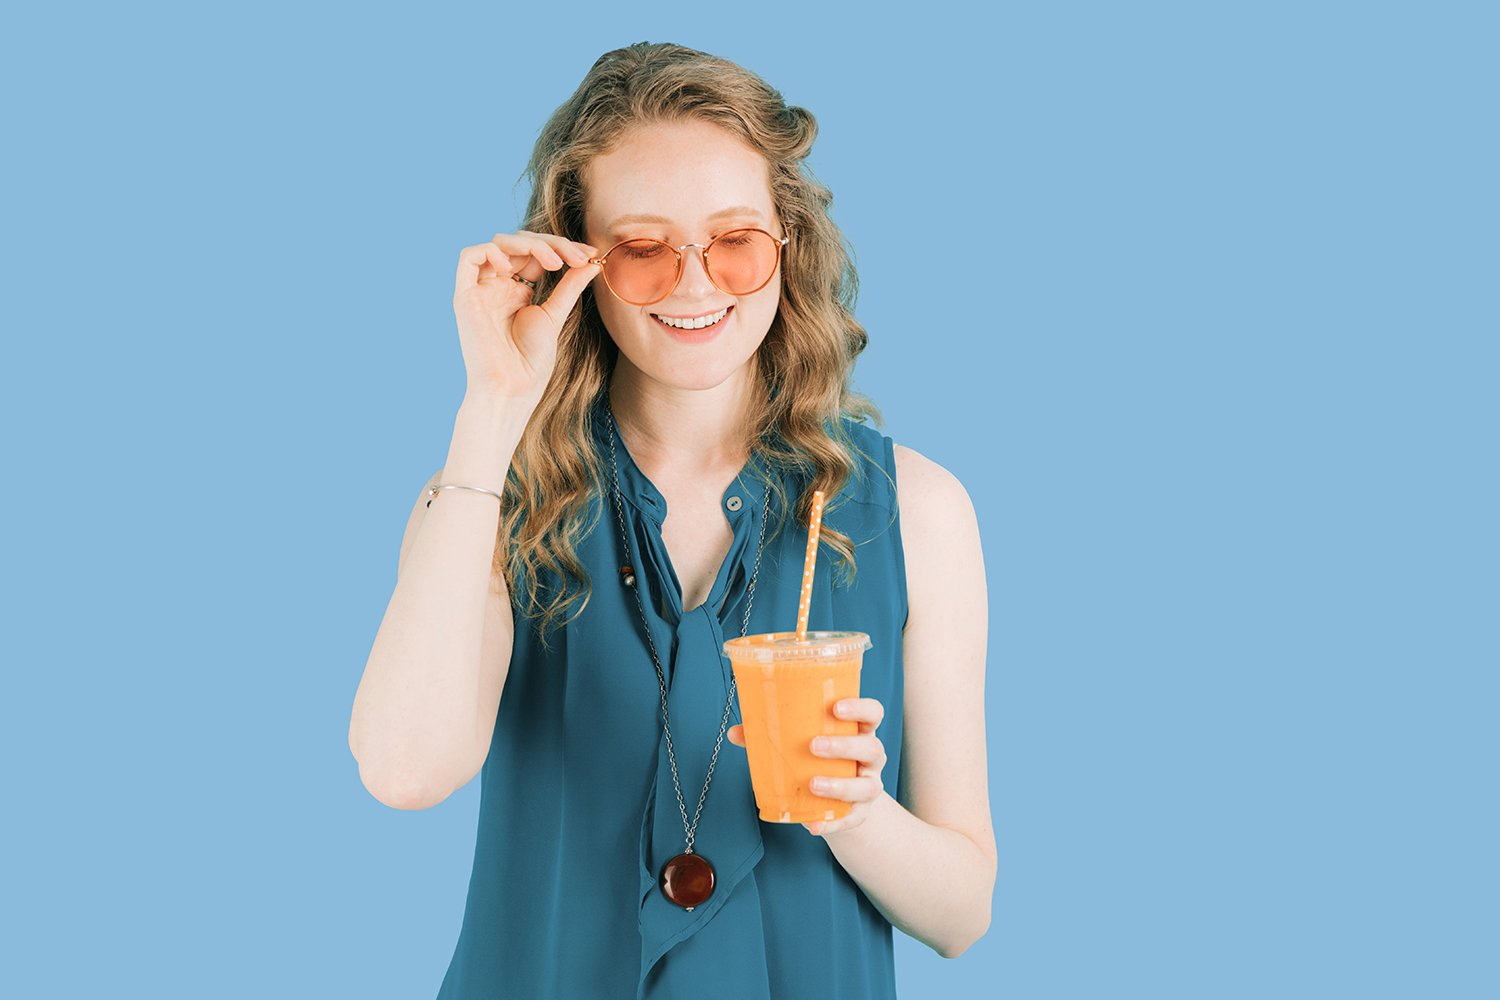 vegan woman with smoothie on branding blue background